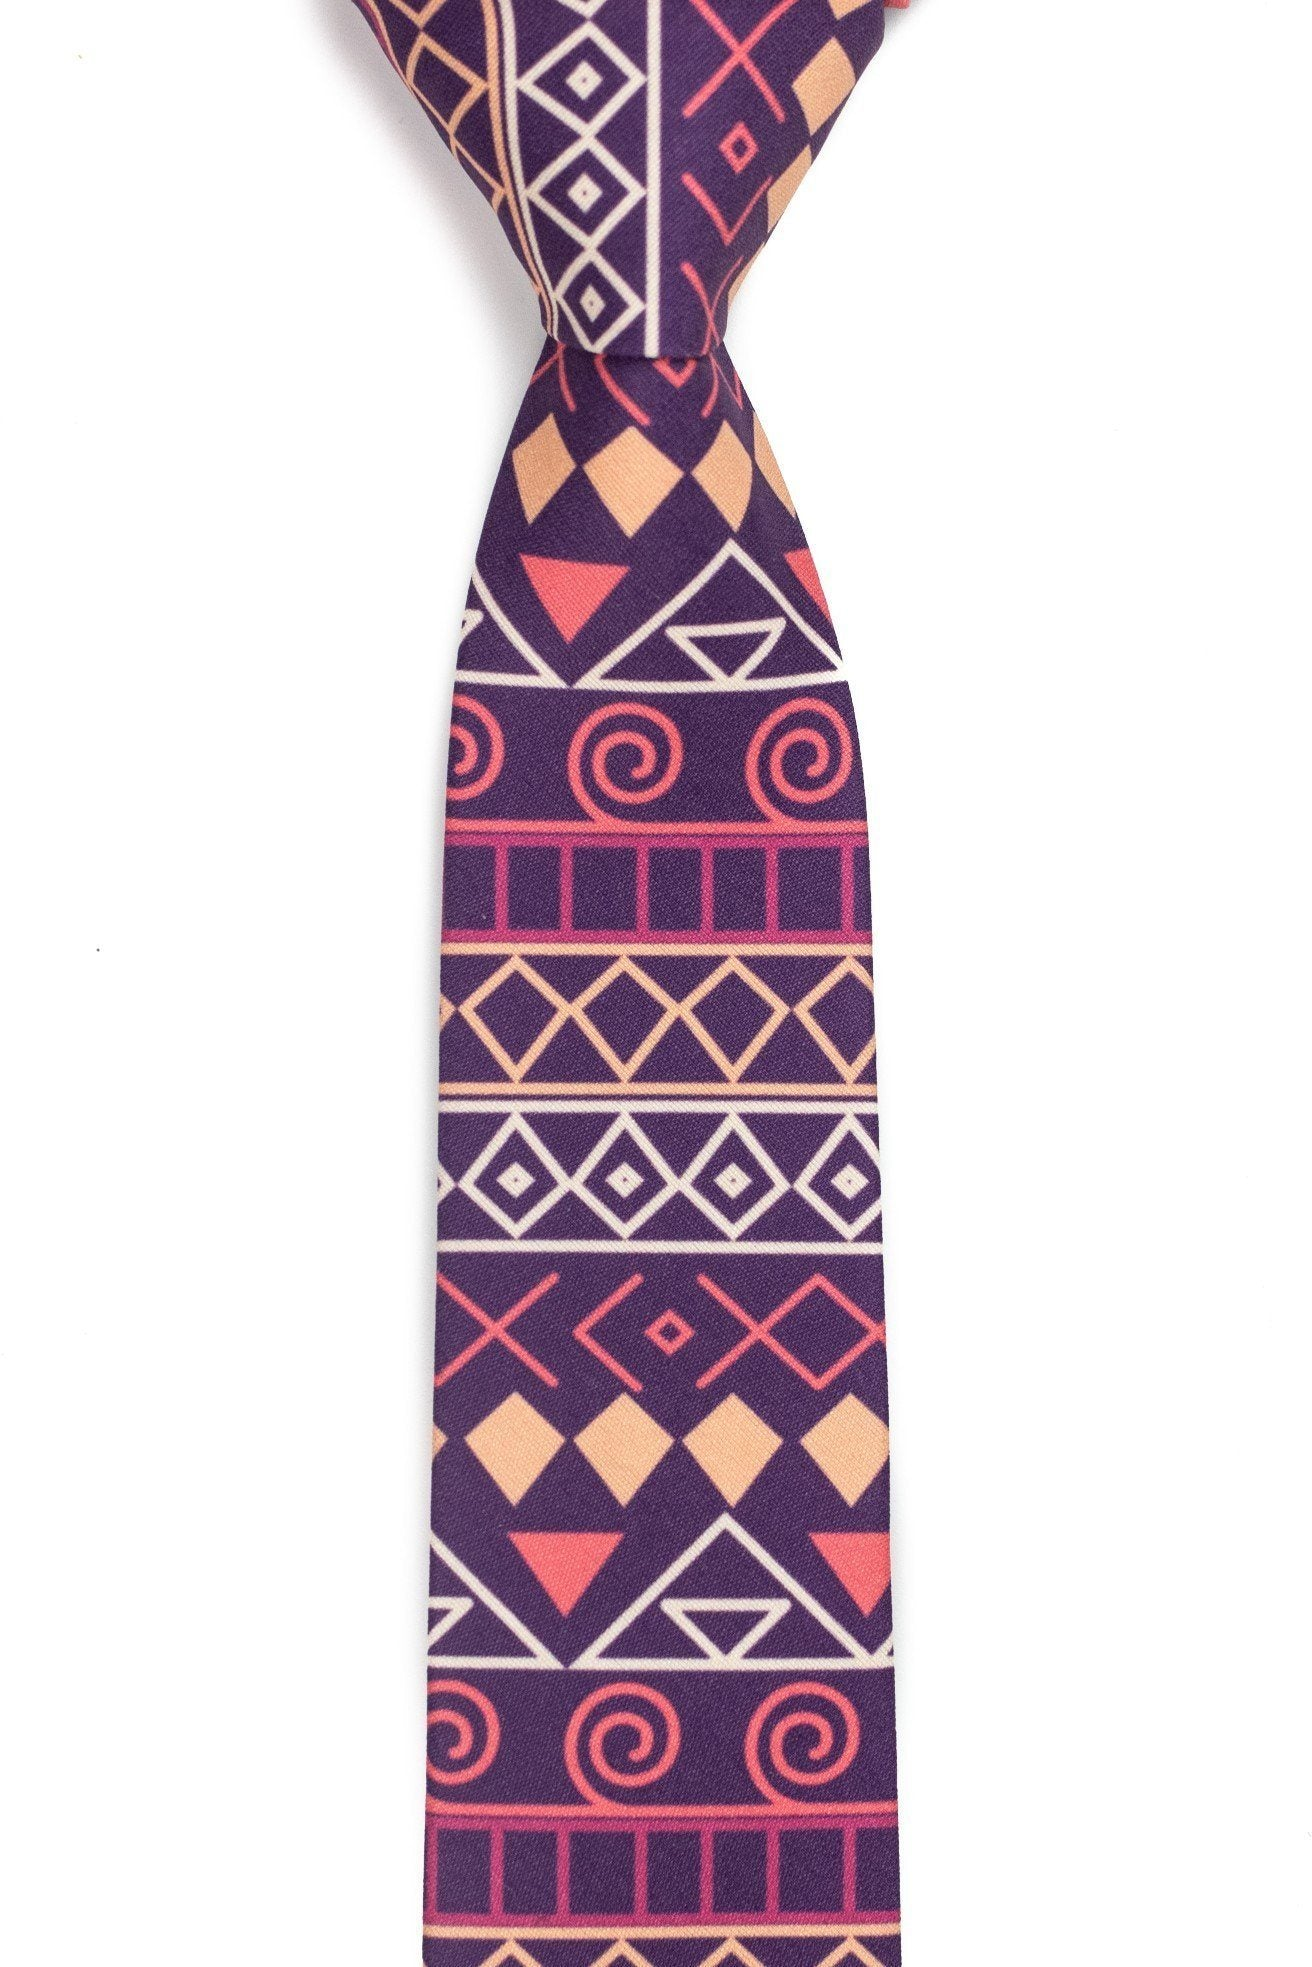 Maui - Dark Pink Tie (Tribal)